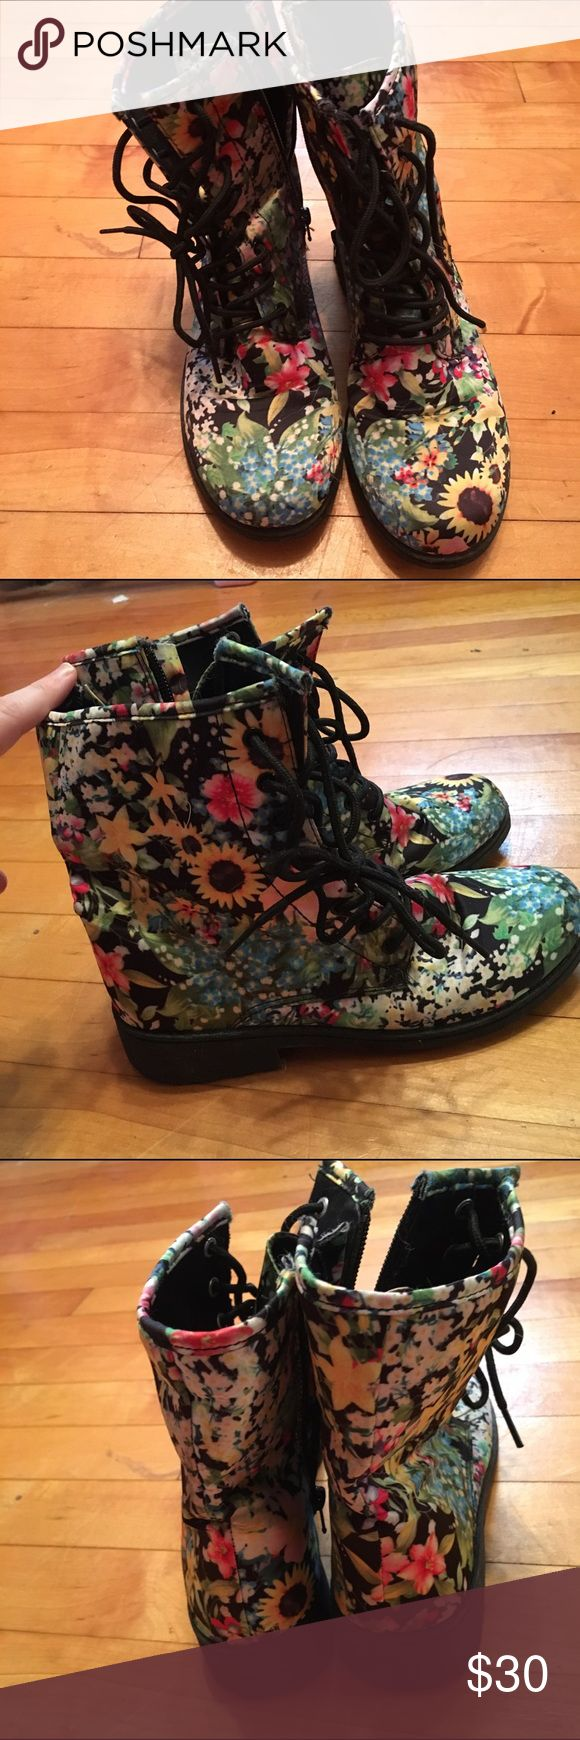 Floral combat boots Floral combat boots, material is vinyl-like, zipper up the inside. Originally from Modcloth. Size 6. ModCloth Shoes Combat & Moto Boots